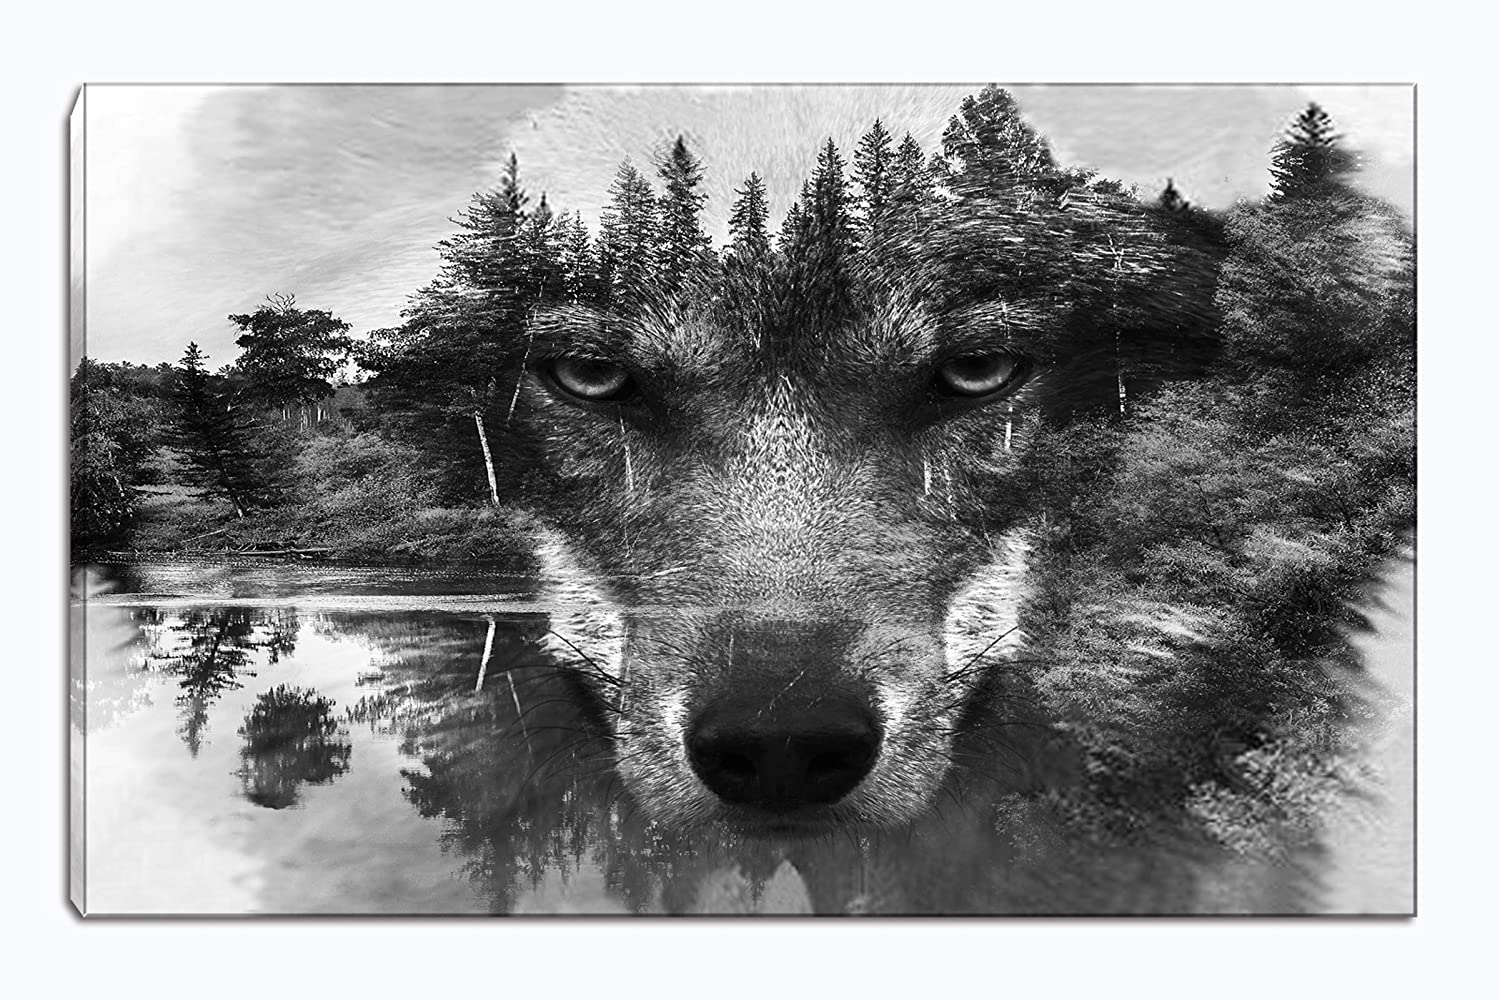 Wolf canvas wall art animal paintings picture black and white prints artwork ready to hang for living room bedroom bathroom home decorations single